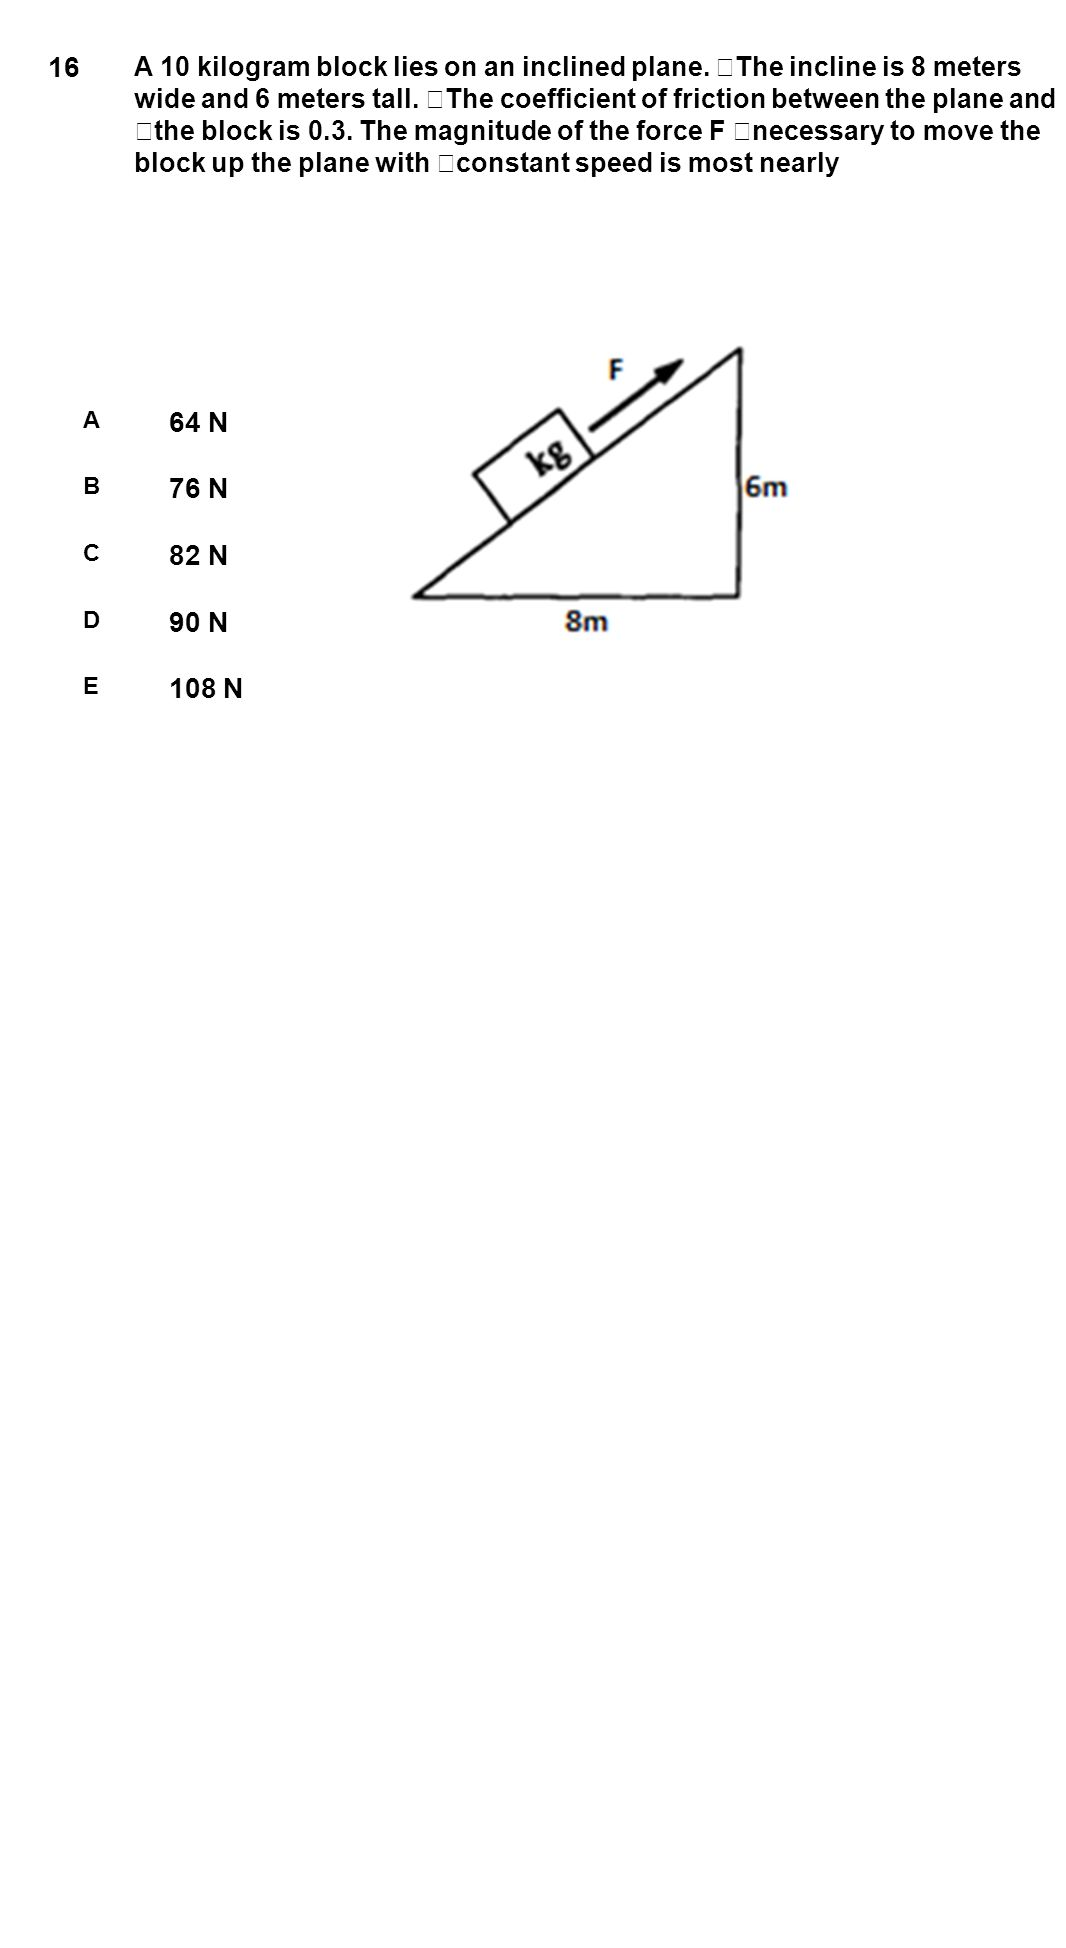 16 A 10 kilogram block lies on an inclined plane. The incline is 8 meters wide and 6 meters tall. The coefficient of friction between the plane and th